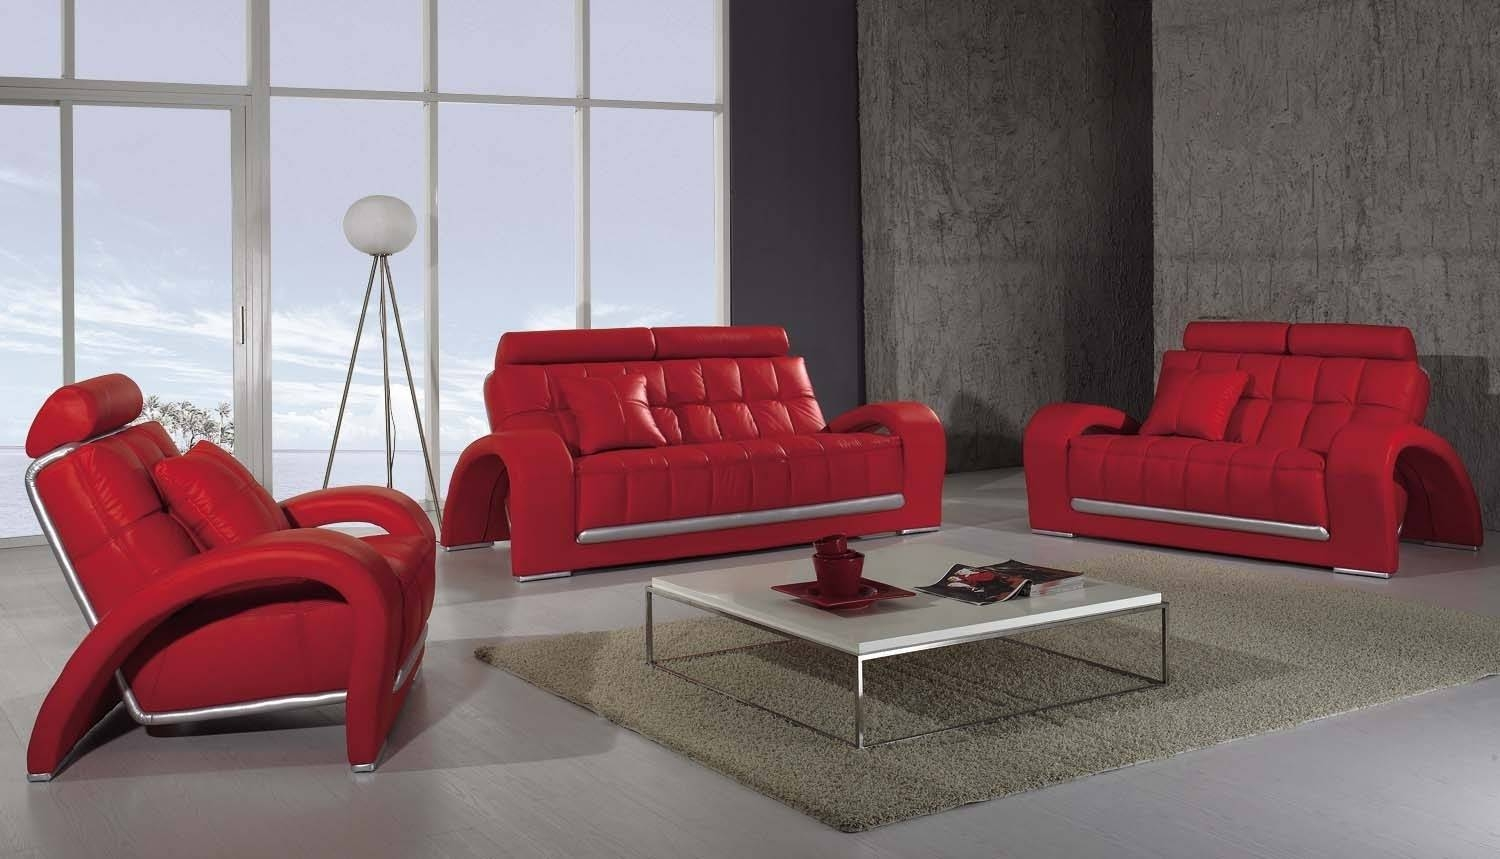 Sofas Center : Astounding Red Sofa Set Images Ideas Fabric Sets with regard to Red Sofas and Chairs (Image 27 of 30)